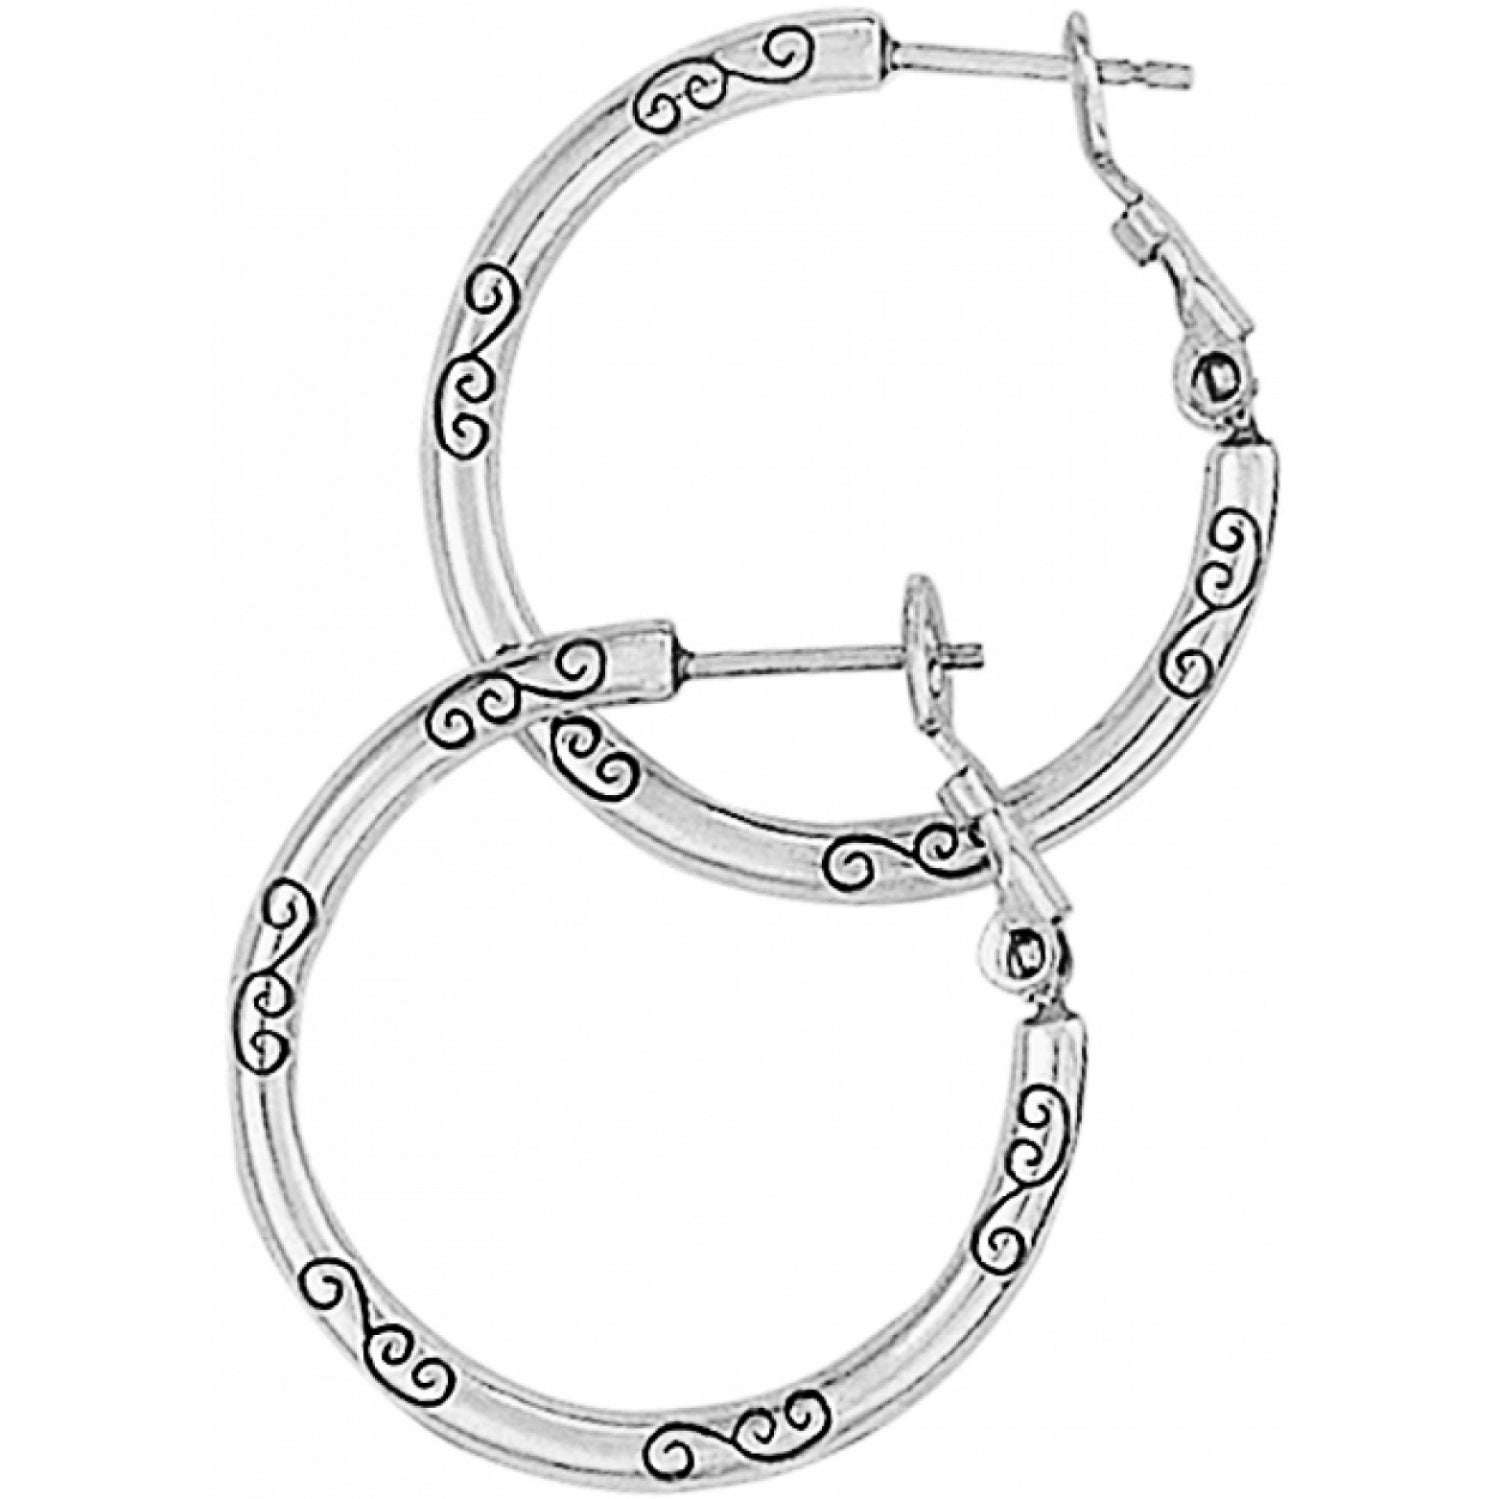 Small Earring Charm Hoops